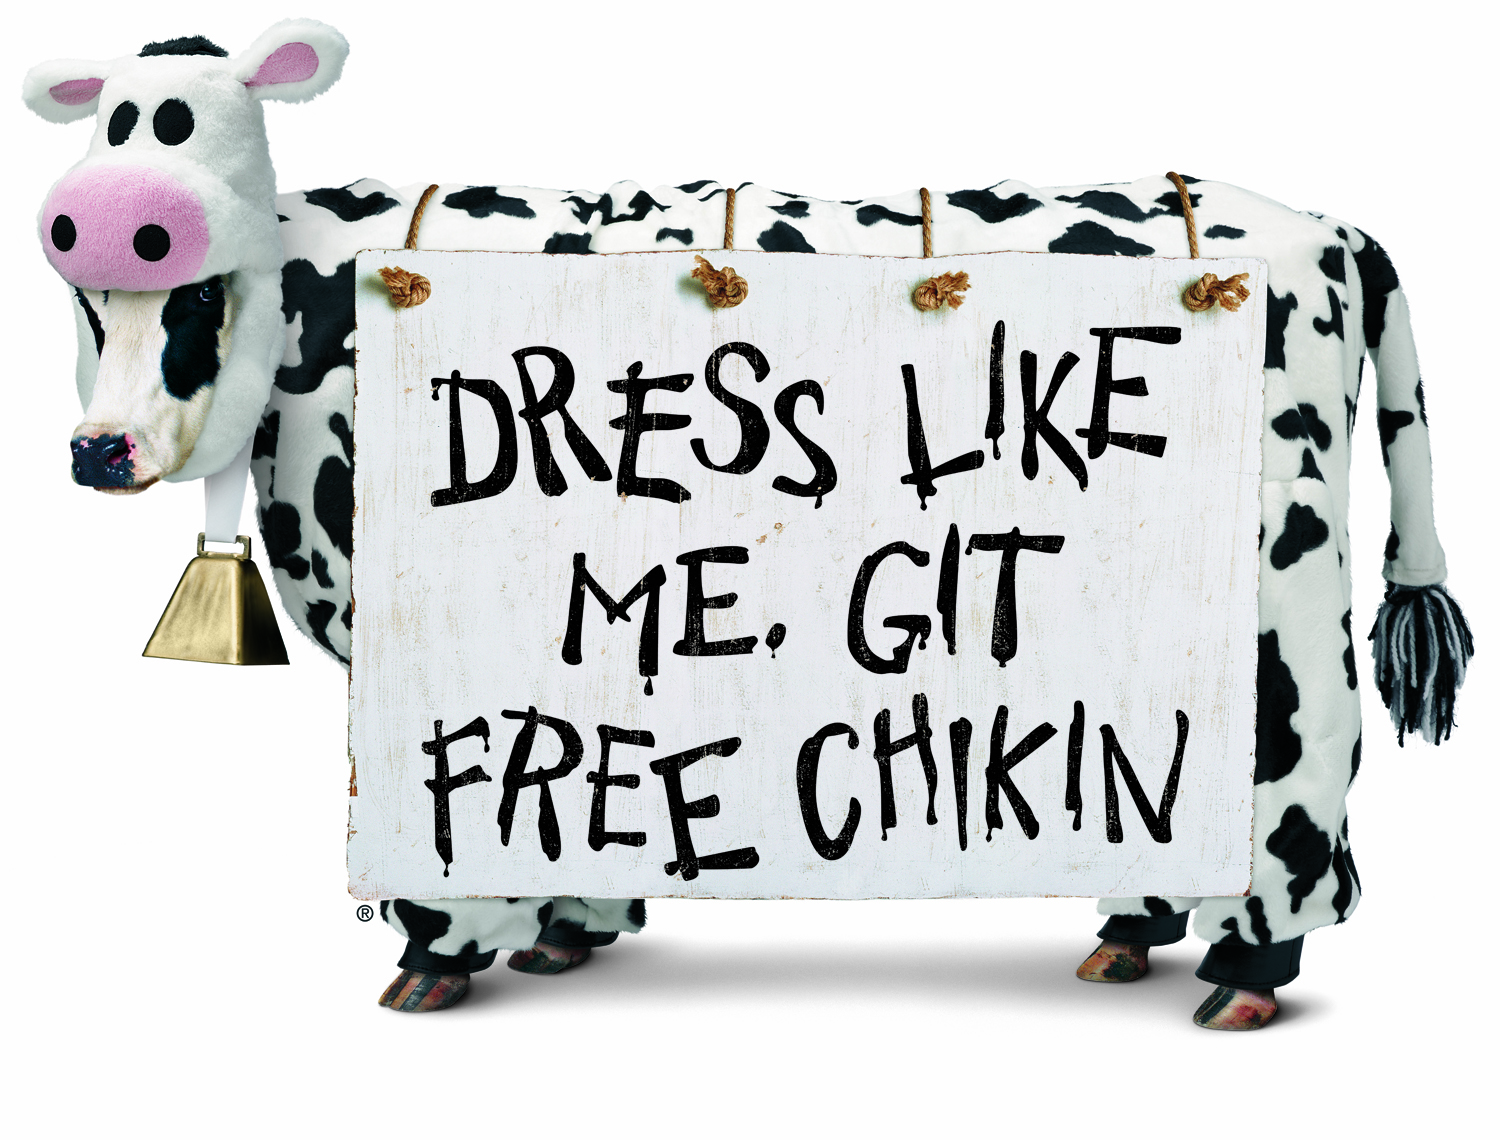 20th Anniversary of the Eat Mor Chikin Cow Campaign.